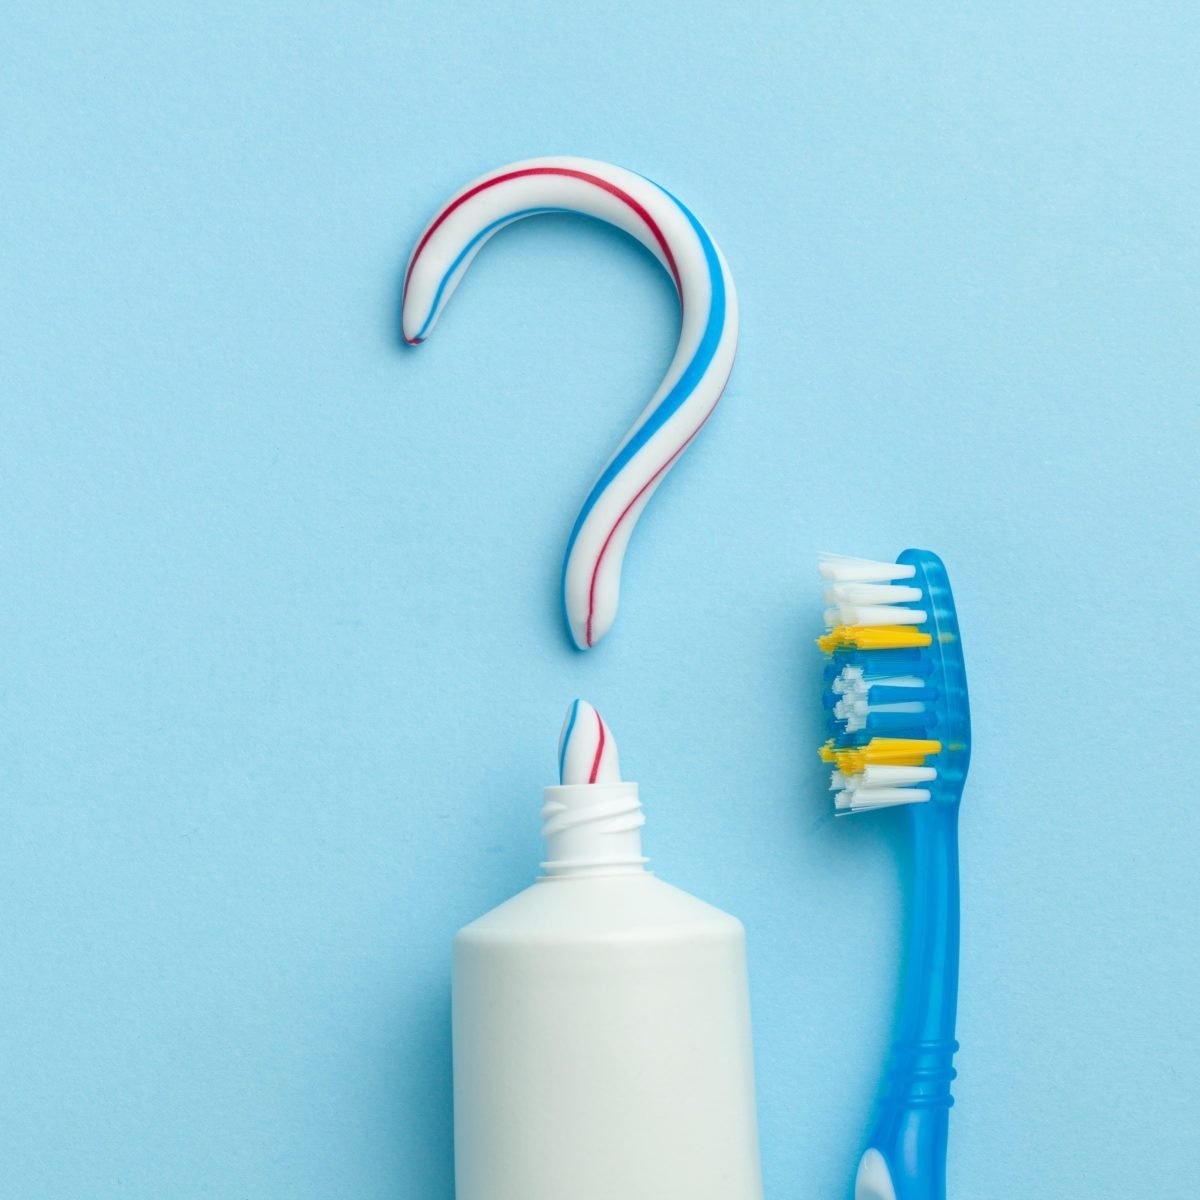 Why Don't Hotels Provide Toothpaste?